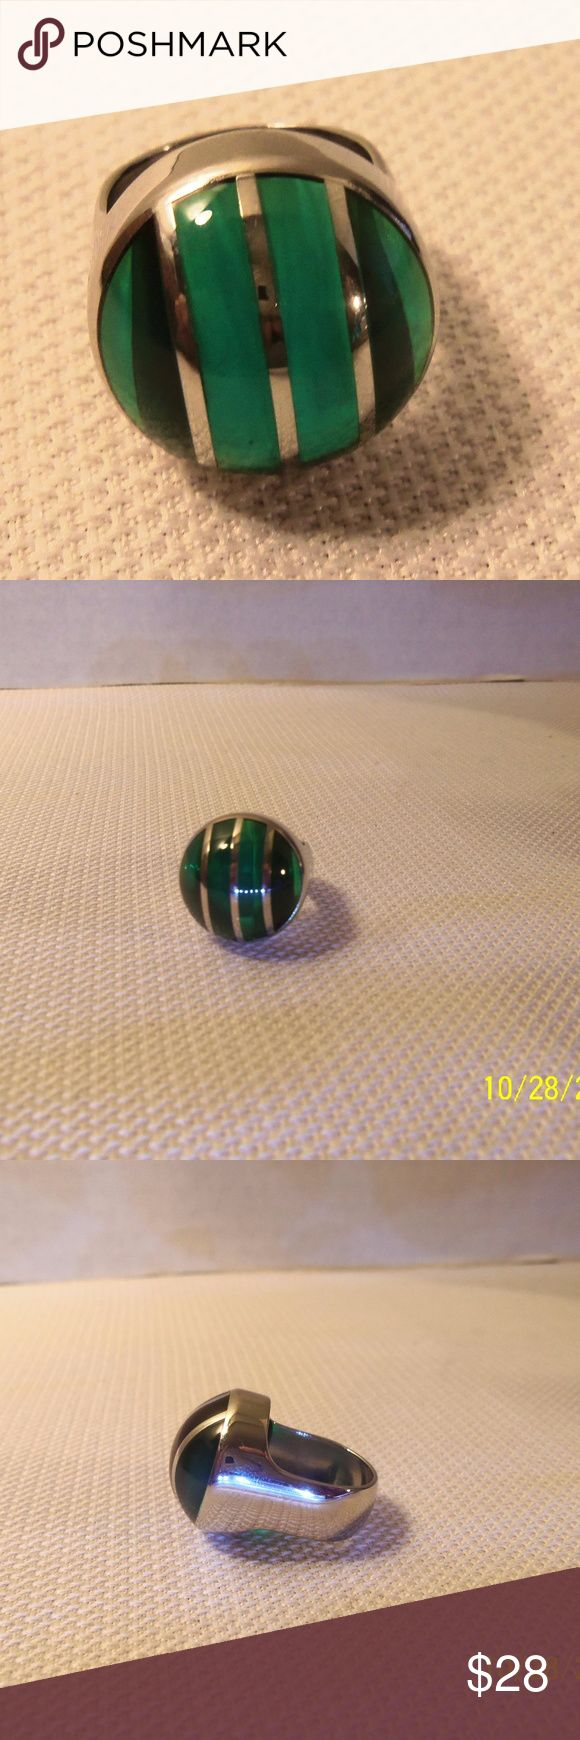 Swatch Bijoux Color Cut Sky Green Ring Size 5 Lovely gently used ring. Model JRS0004-5 from year 2001.  316L Stainless steel with resin Swatch Jewelry Rings